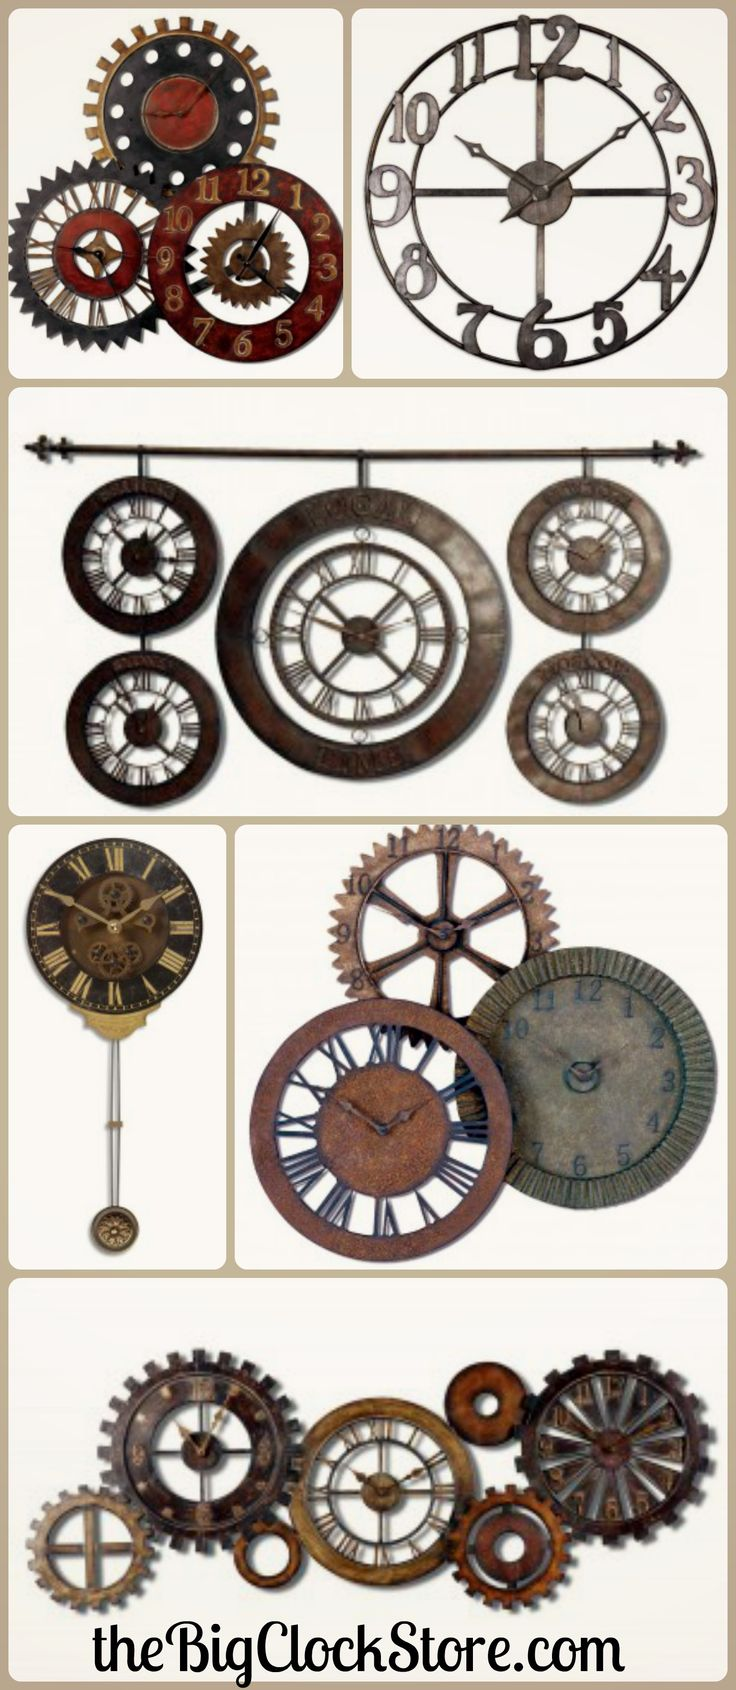 Am americana country wall clocks - We Have Lots Of Unique Clocks And They All Come With A 3 Year Warranty